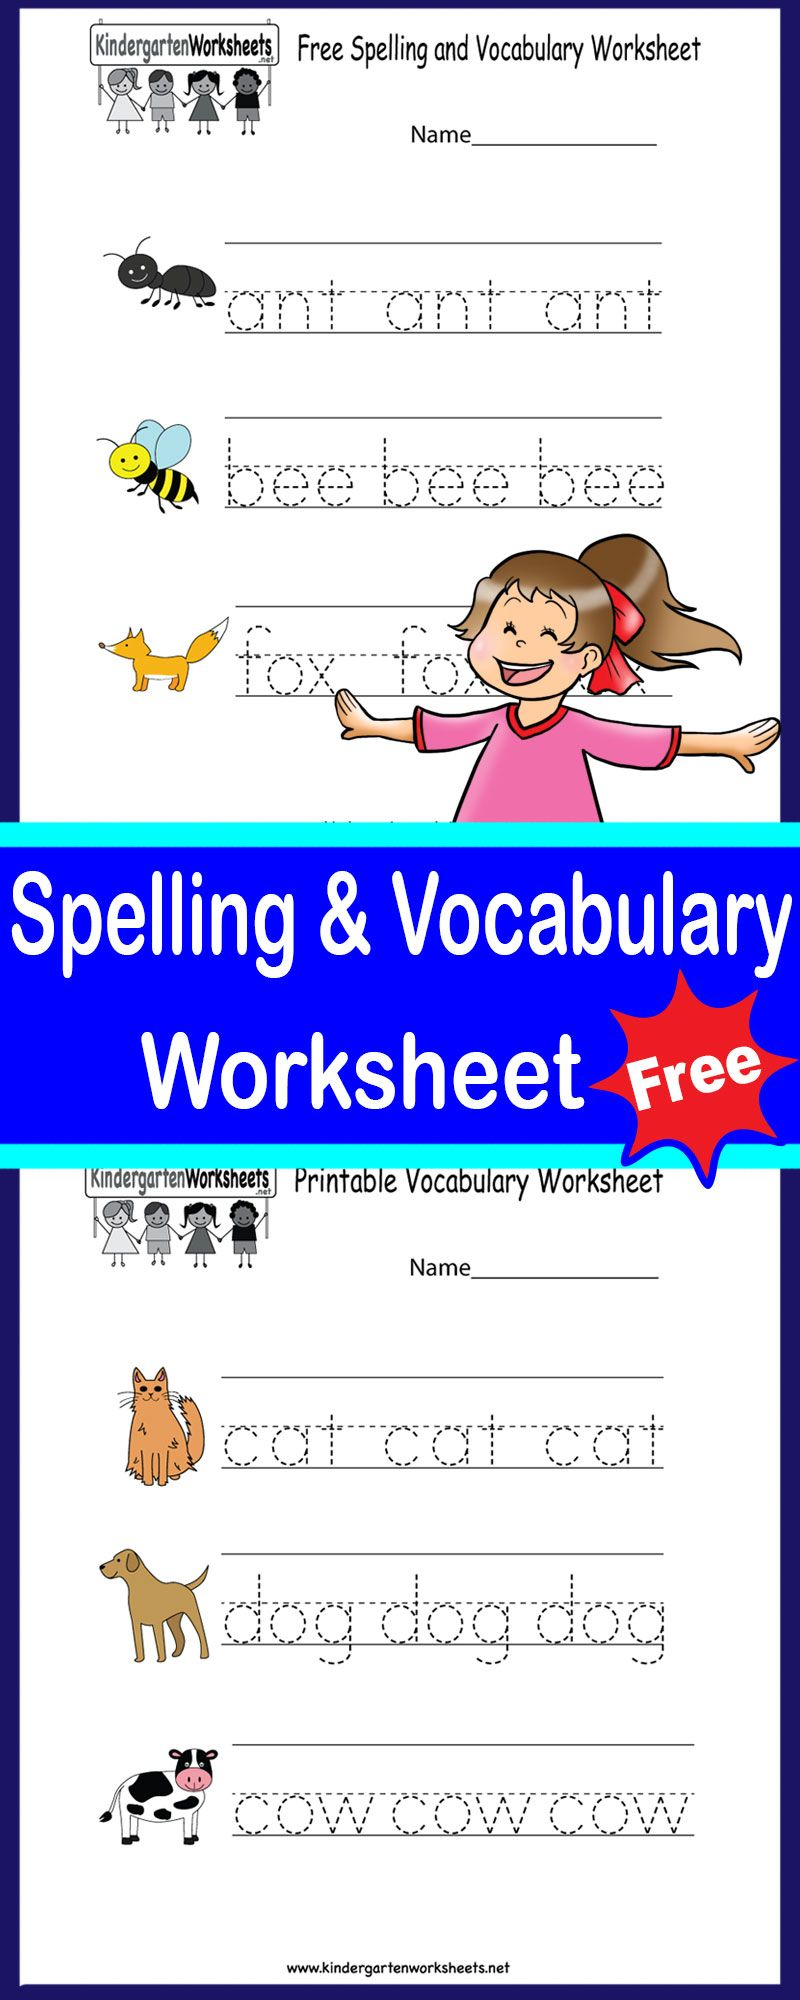 Fun spelling and vocabulary worksheets to download, print ...